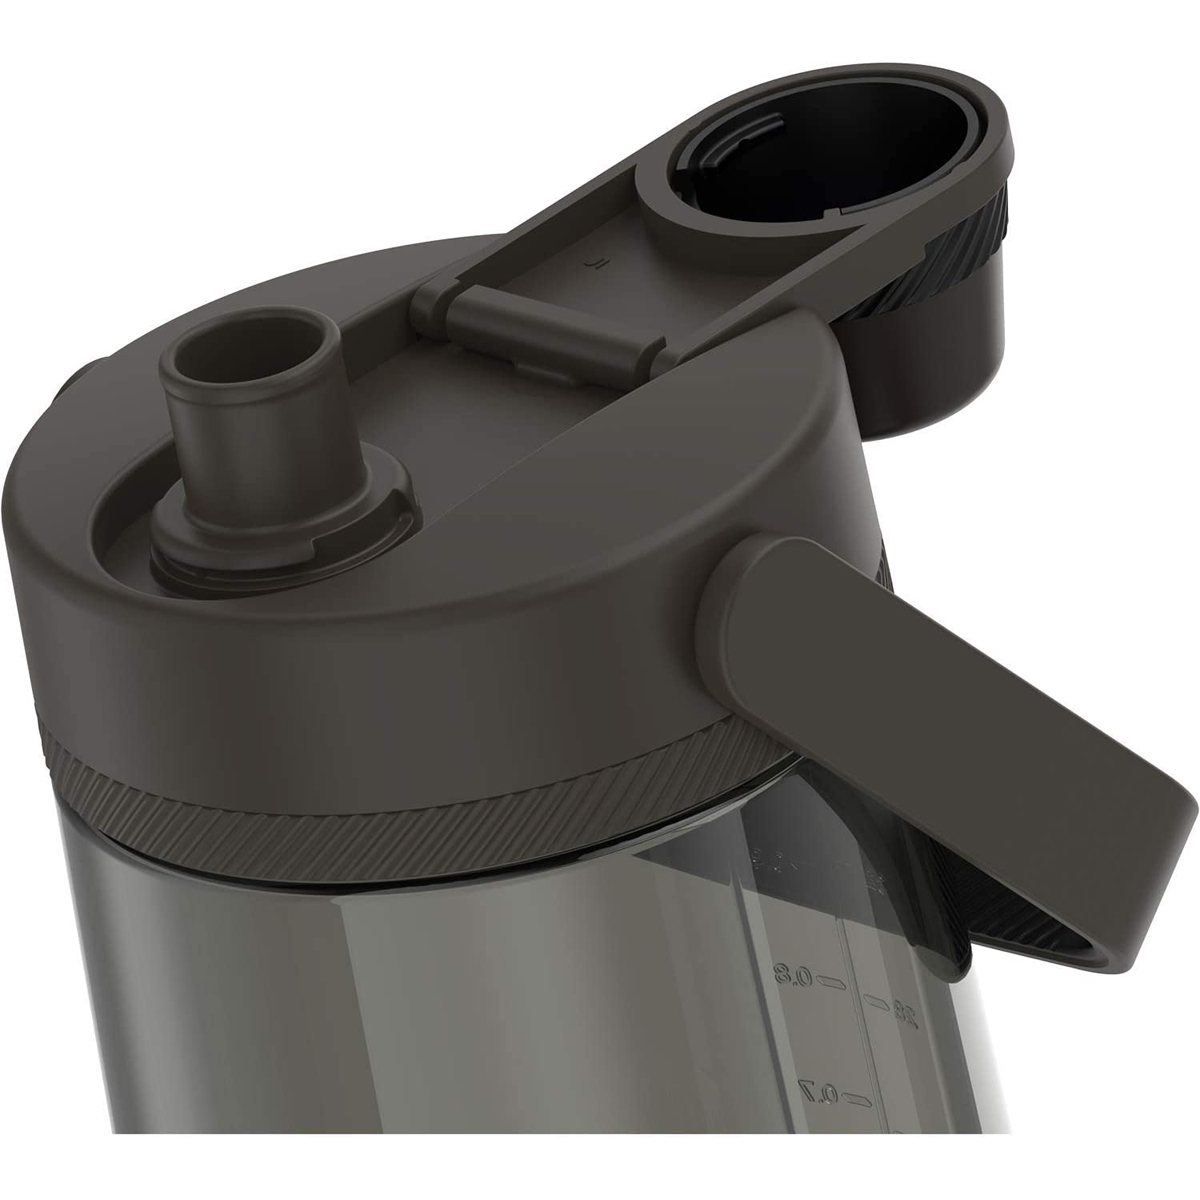 Thermos-40-oz-Guardian-Collection-Hard-Plastic-Hydration-Bottle-with-Spout thumbnail 6